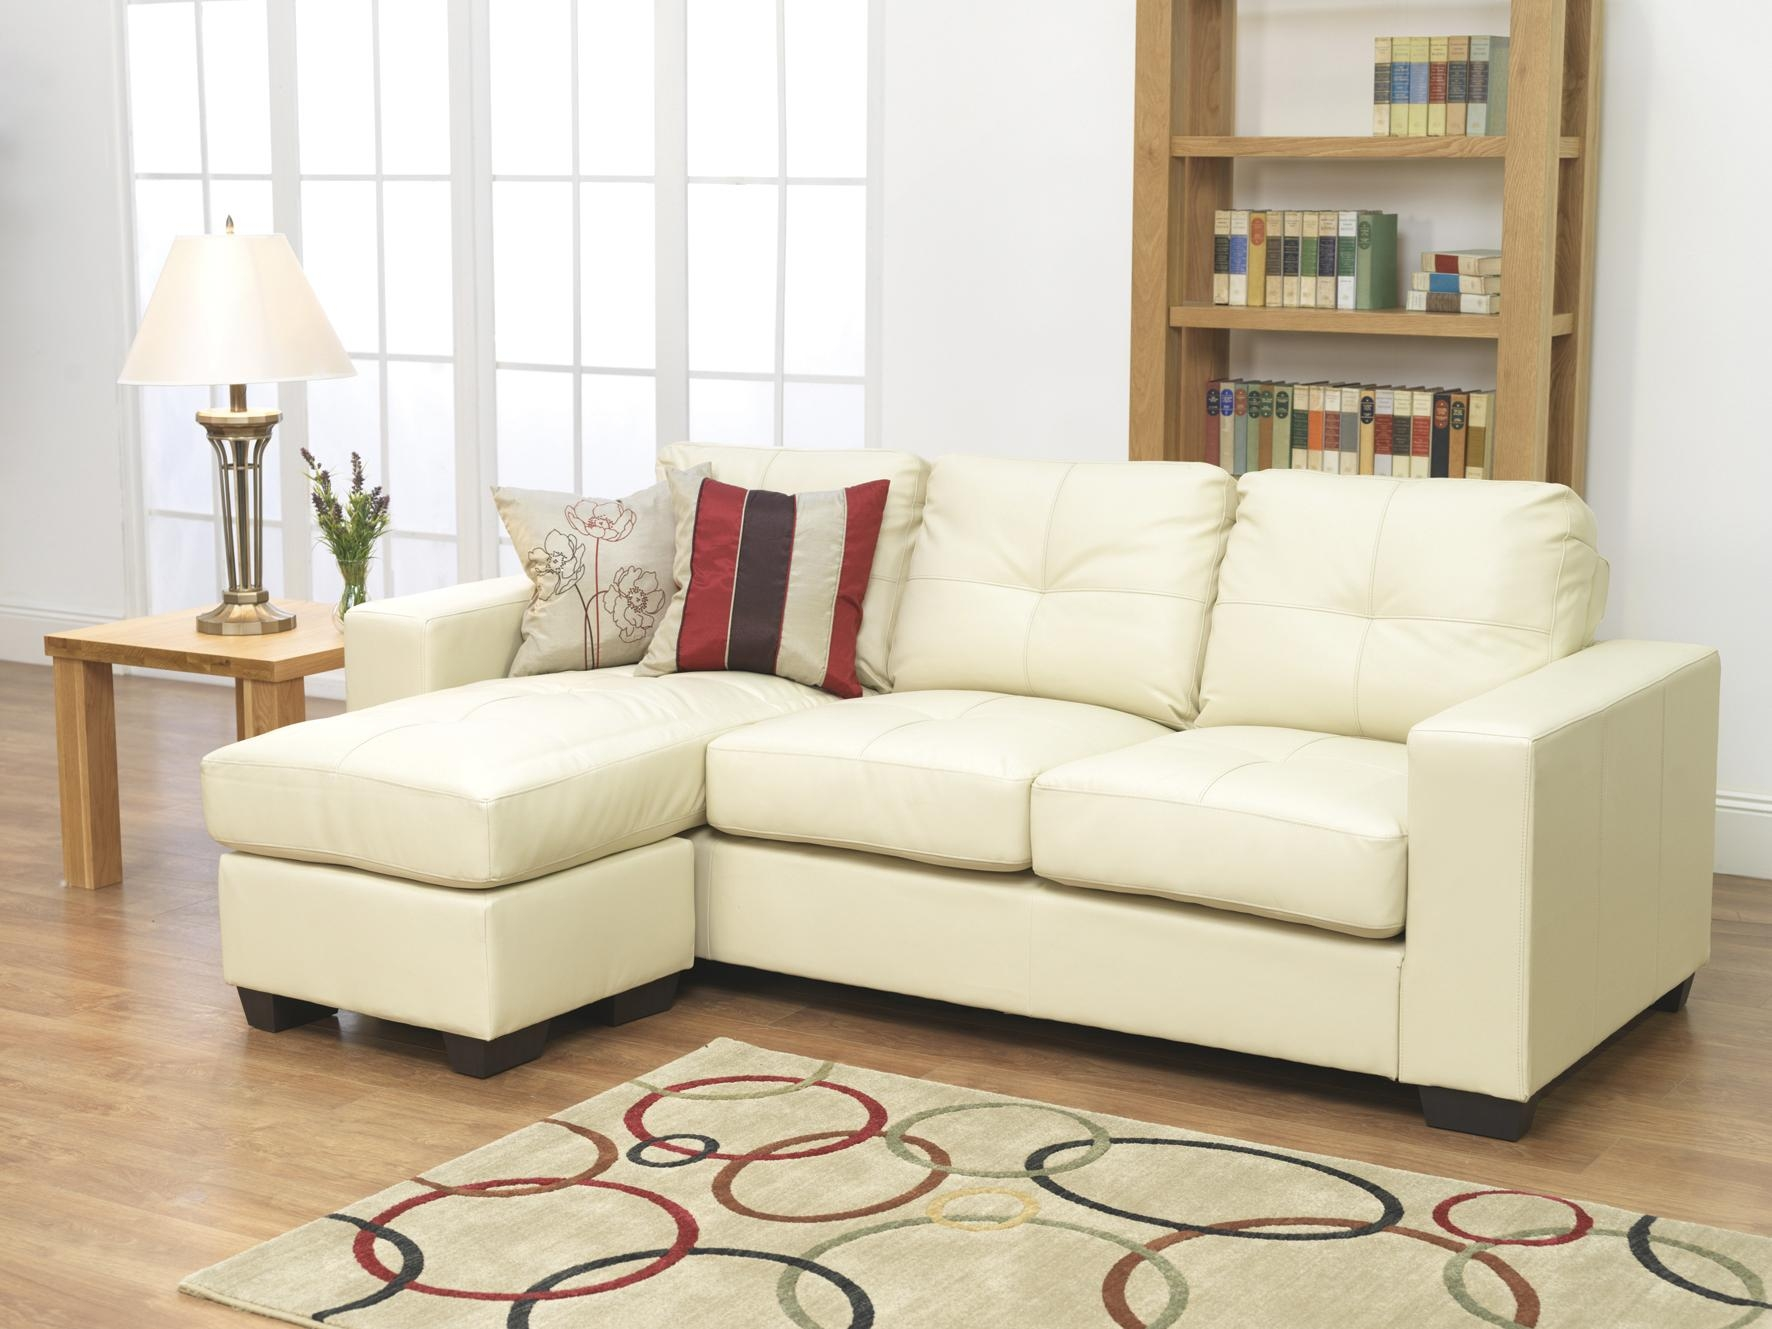 Ivory Color Leather Sofa Set | Centerfieldbar With Regard To Ivory Leather Sofas (View 15 of 20)